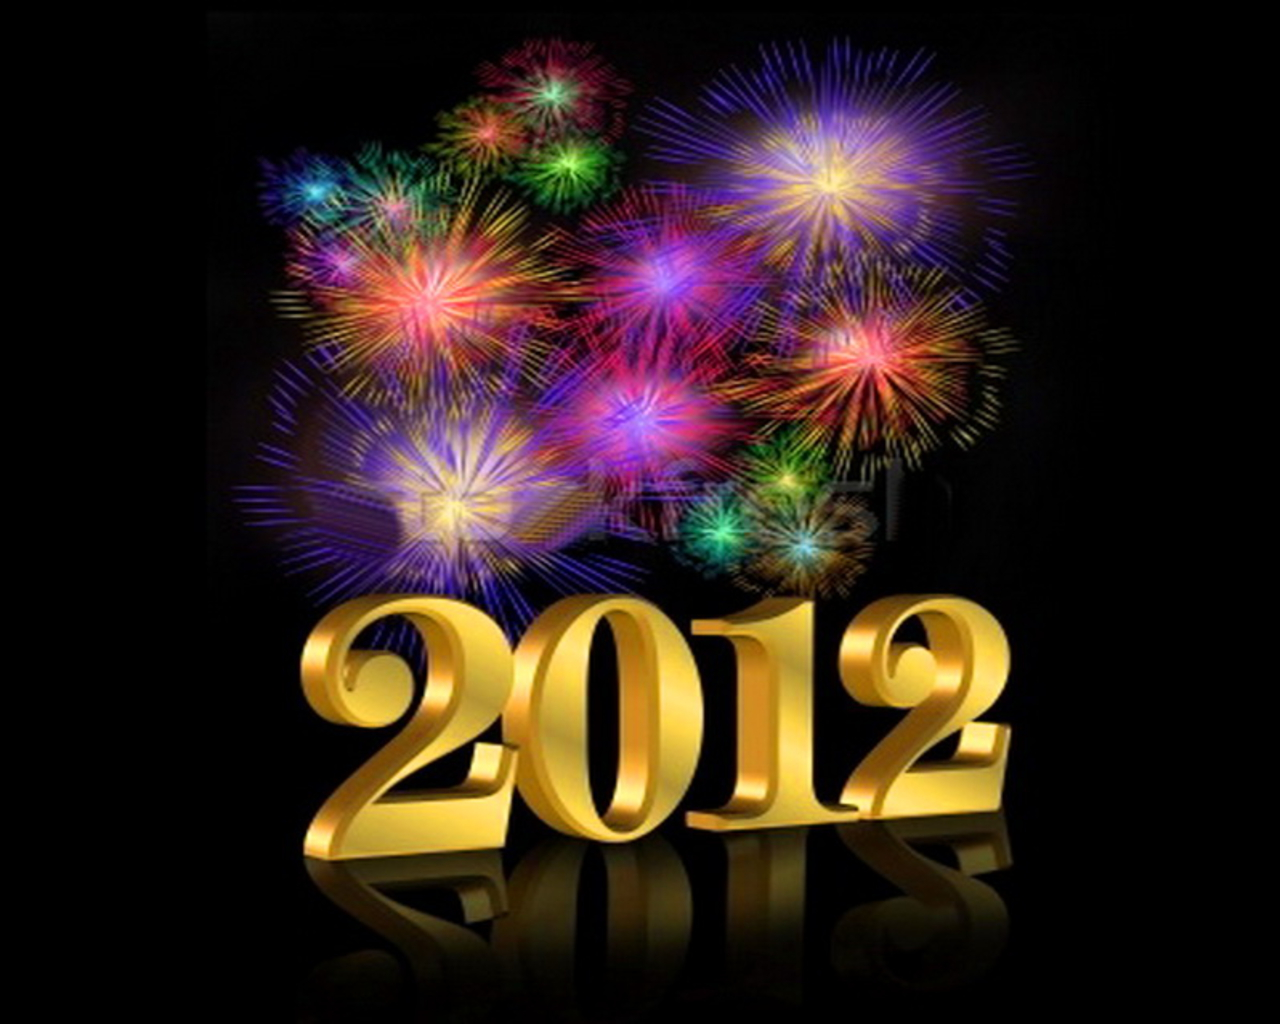 New Years Eve Fireworks Clipart